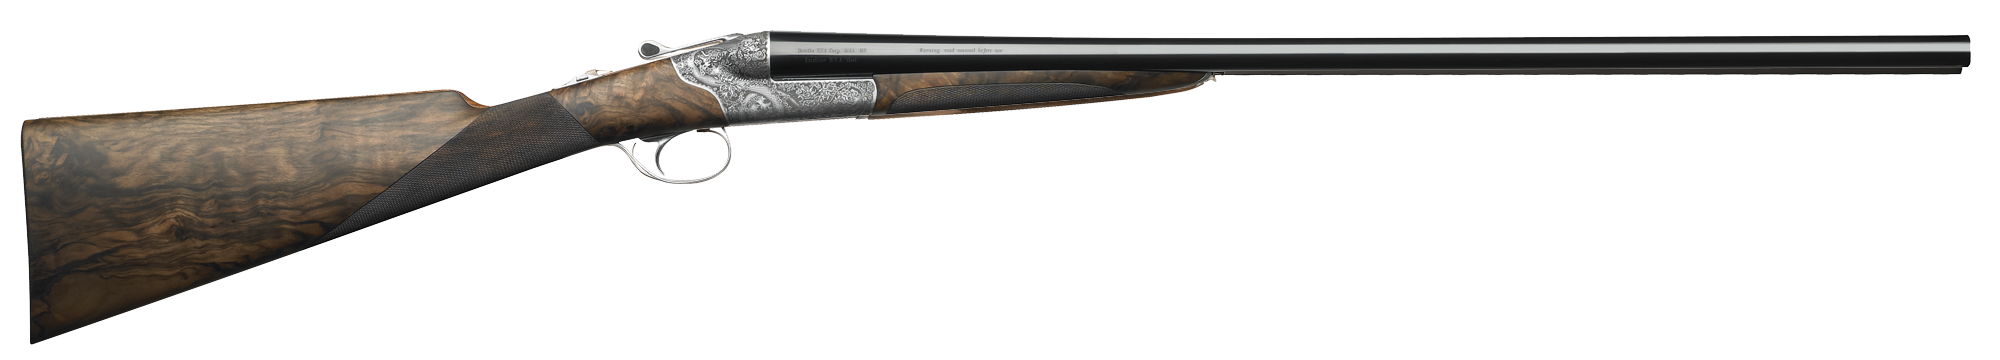 Beretta Marc Newson 486